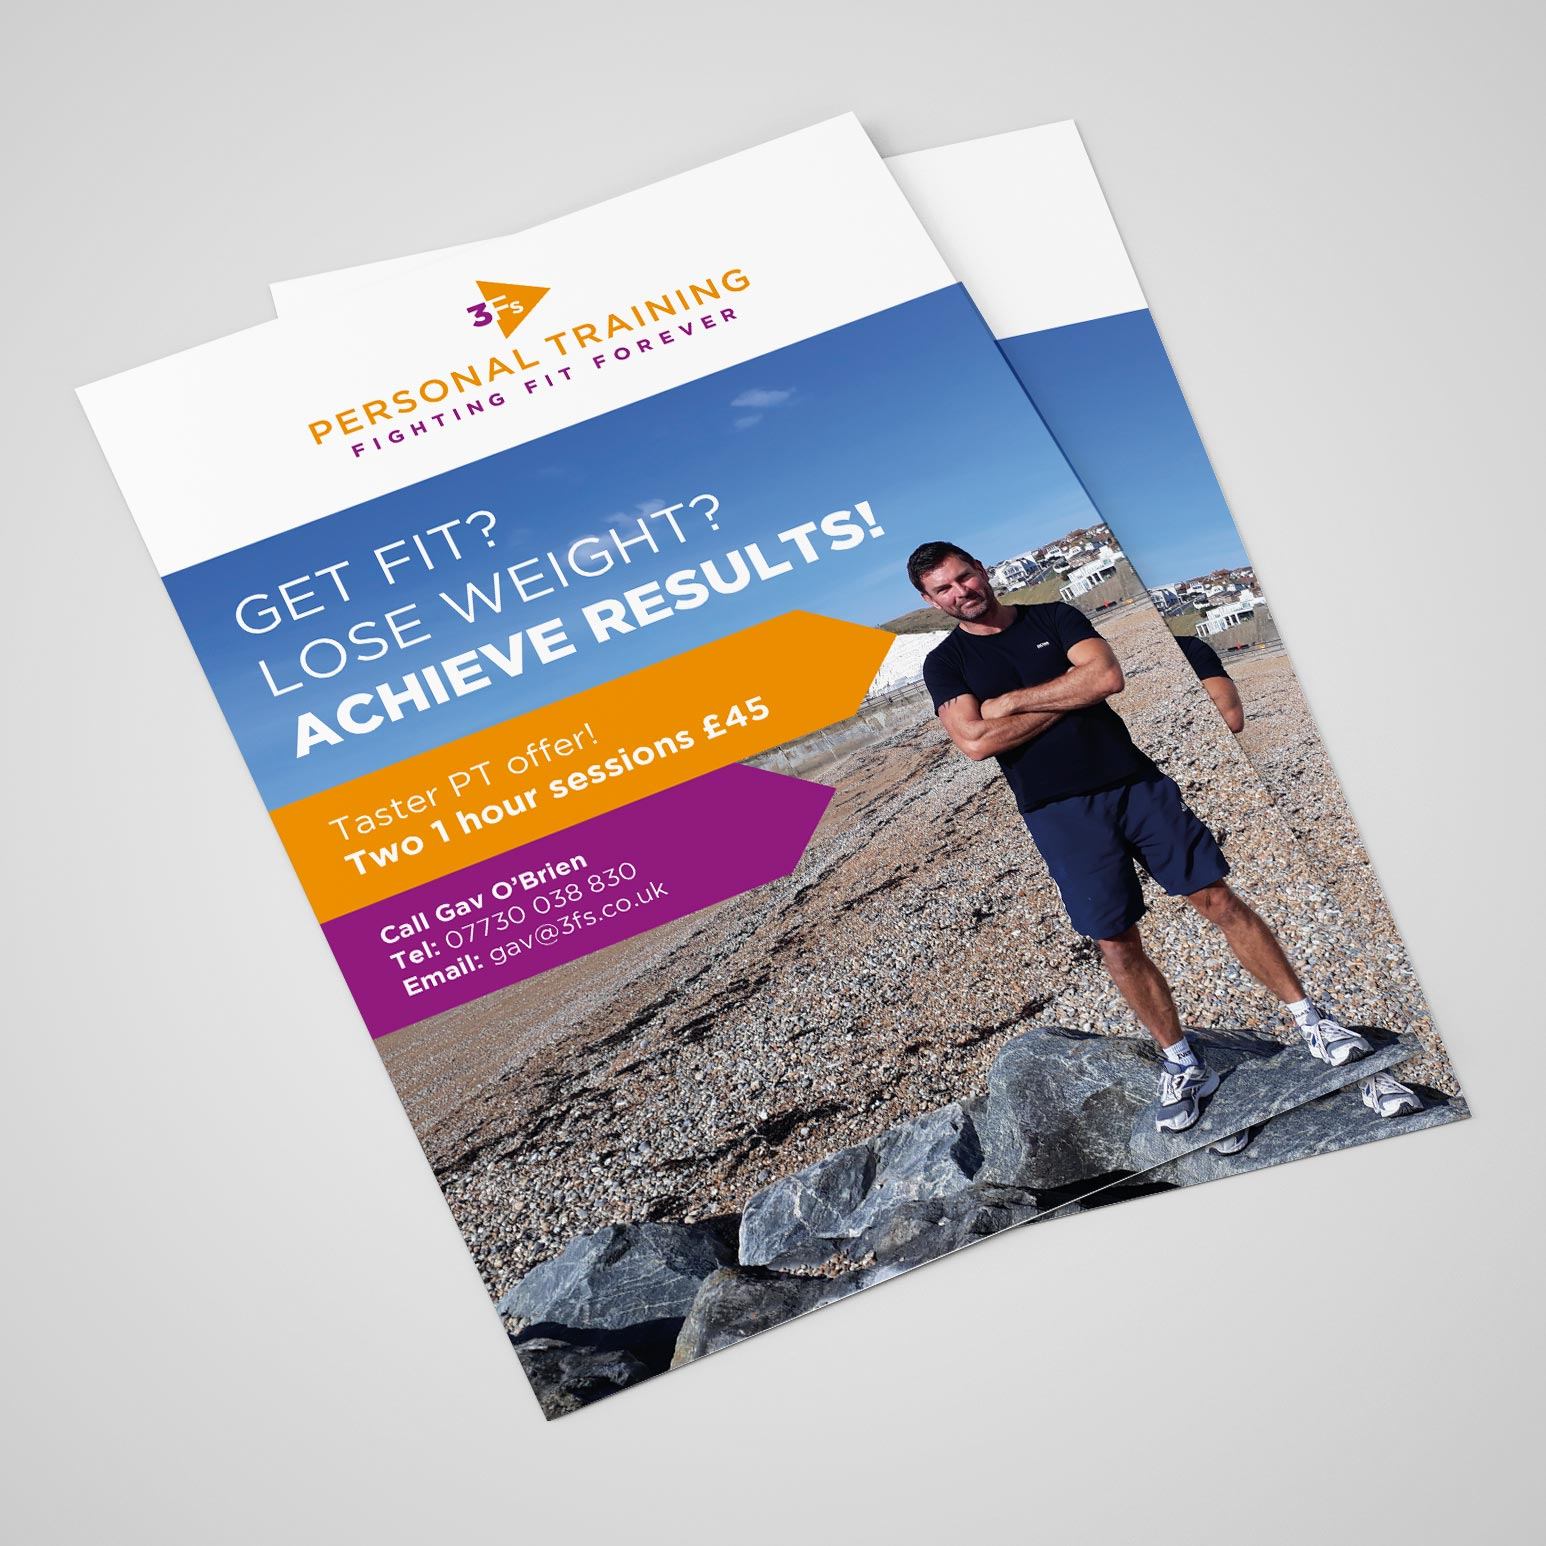 3Fs Personal Training flyer front